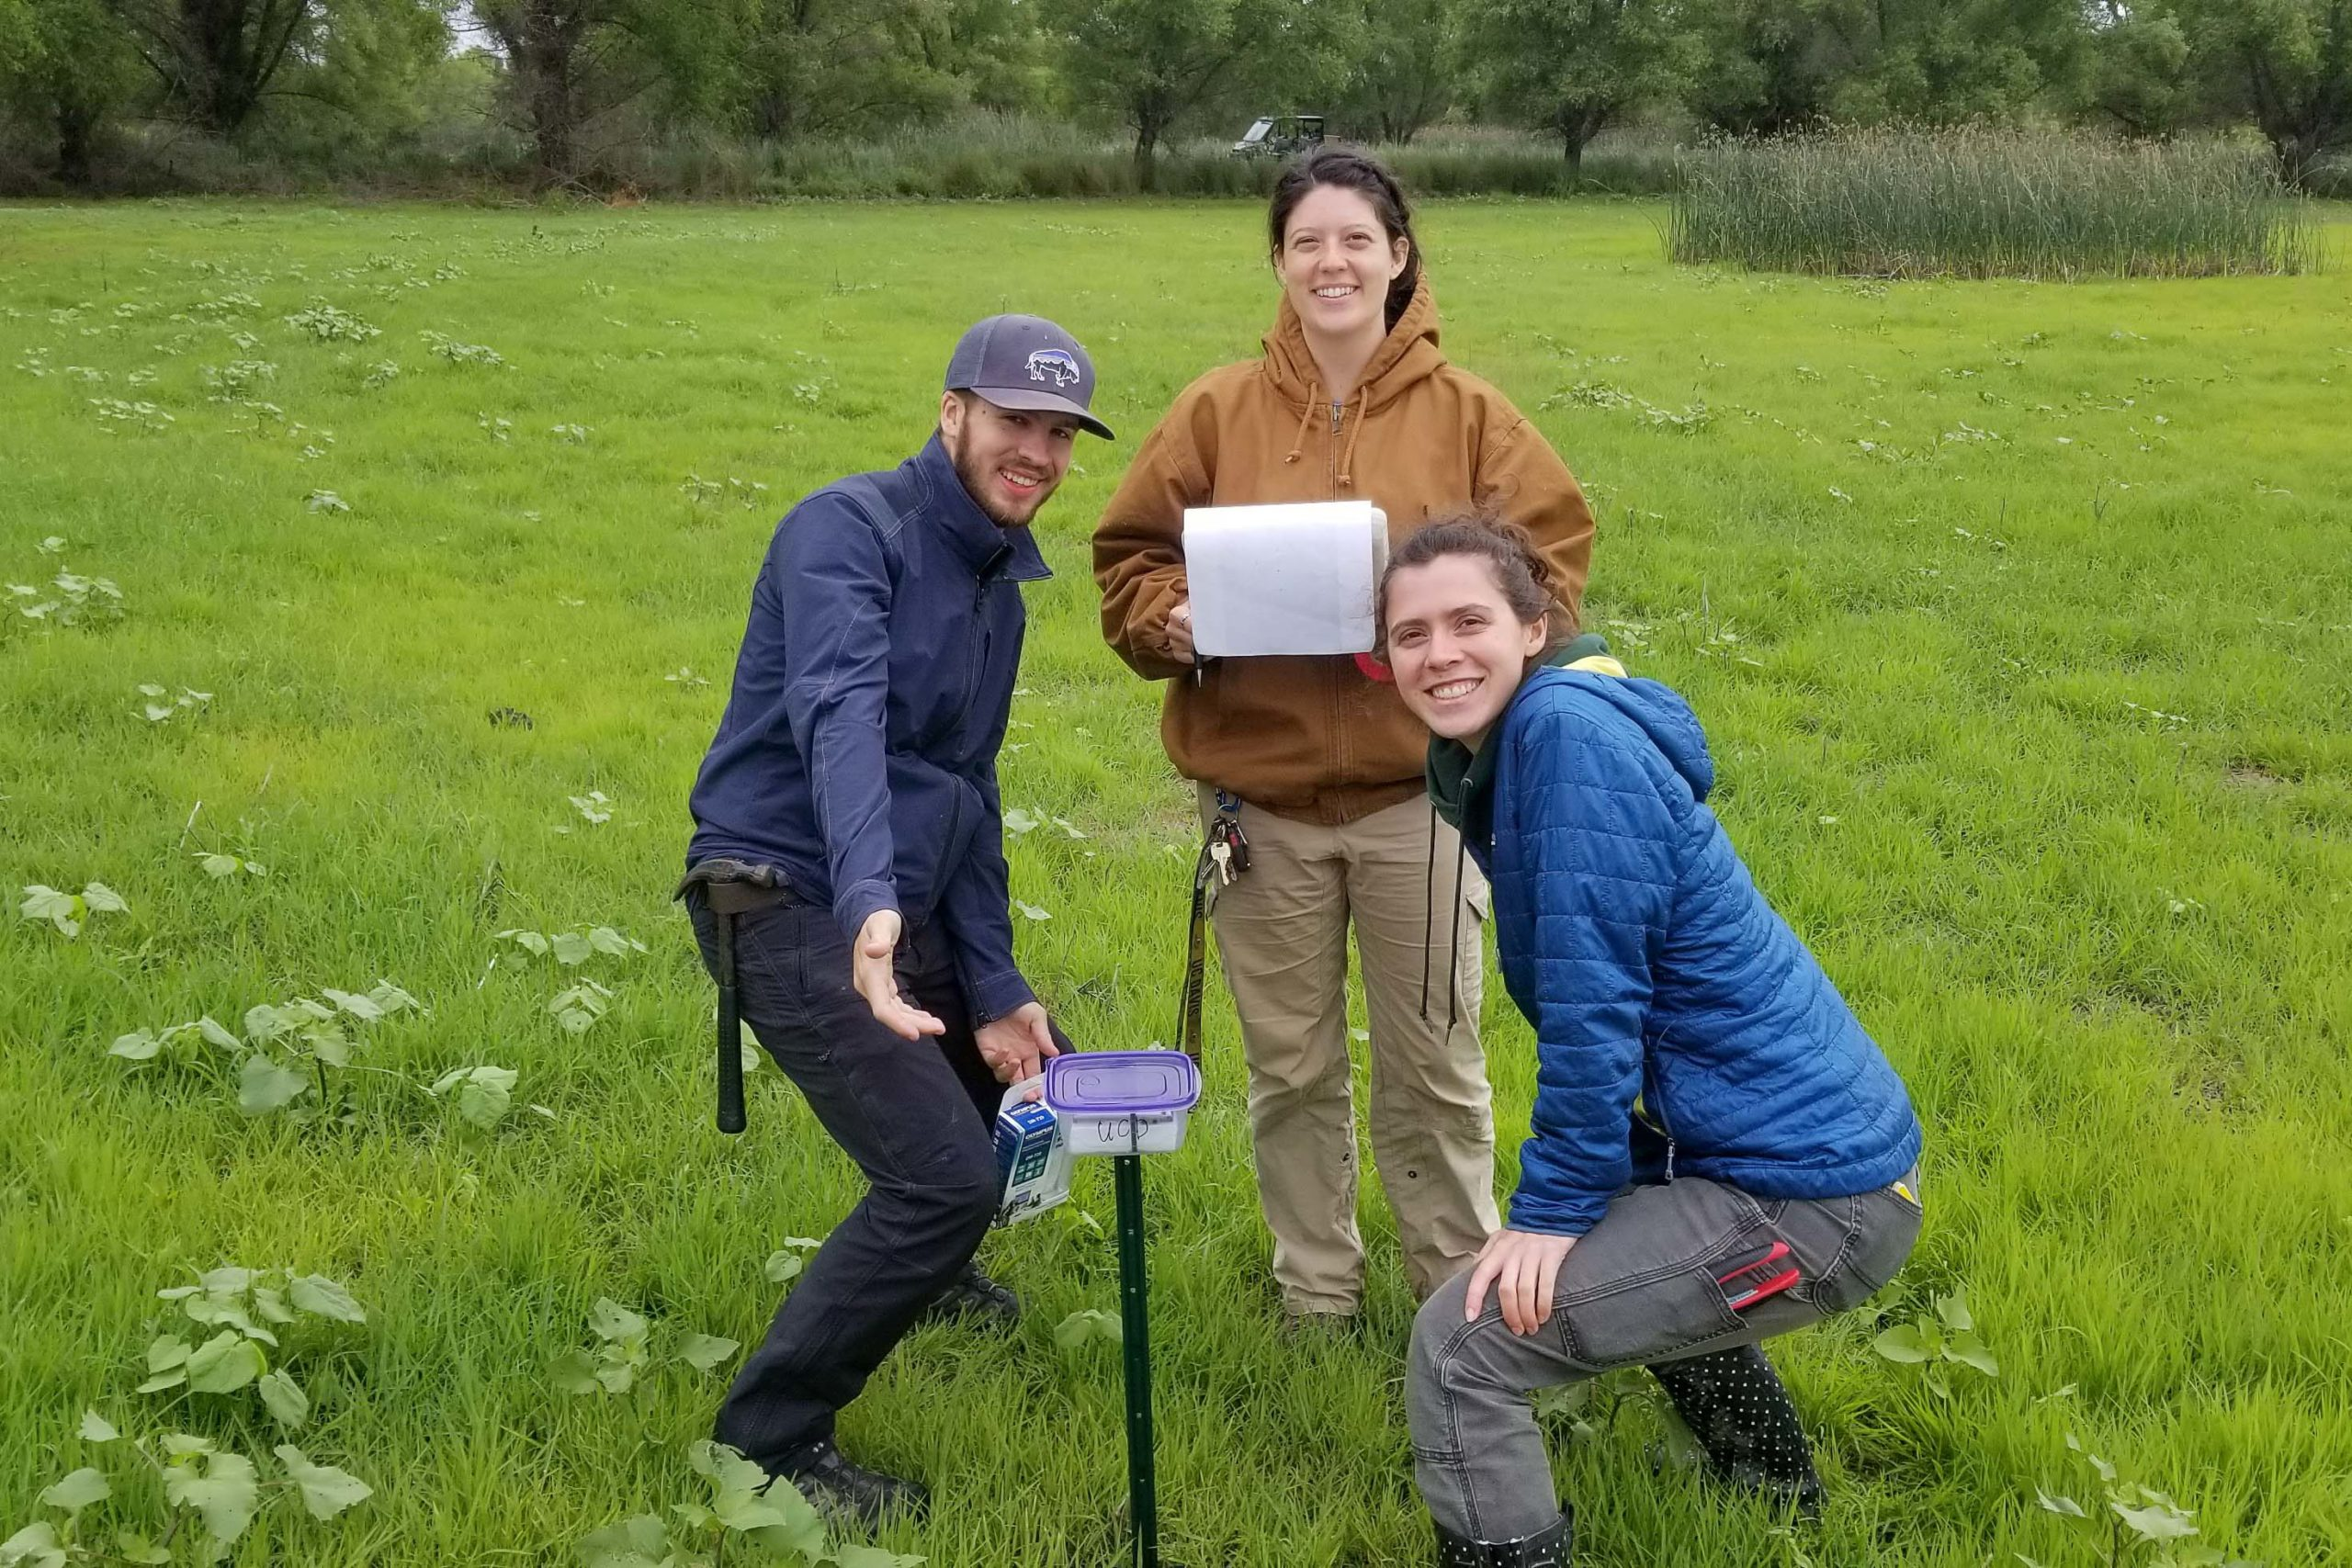 Danielle Fradet (with clipboard), Jacob McCafferty, and Lynette Williams setting up an audio recording unit in a marsh plot at Bird Haven Ranch; photo by Andy Engilis